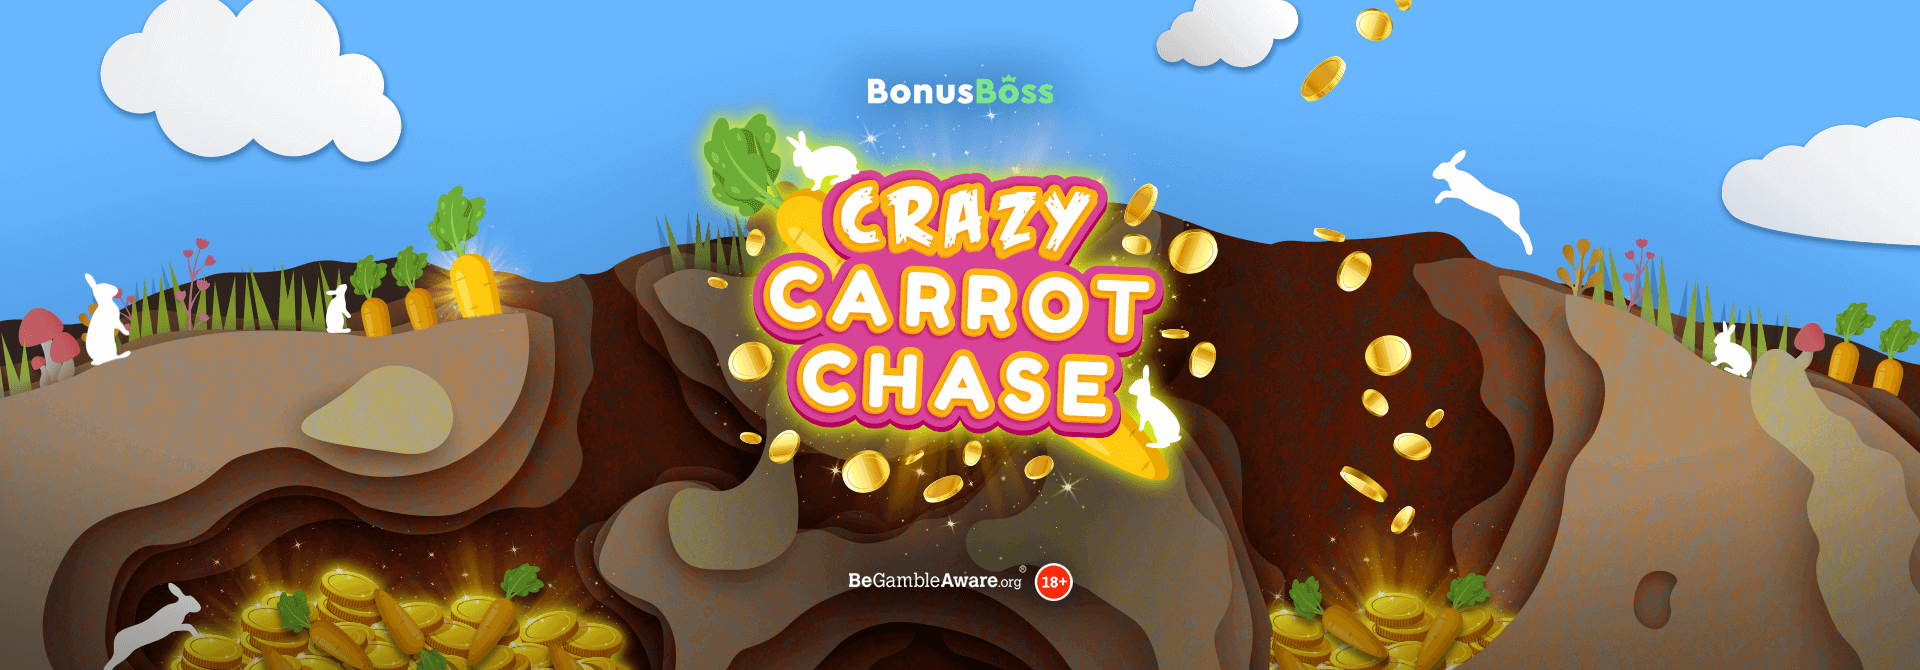 Who's winning the race in the Crazy Carrot Chase?